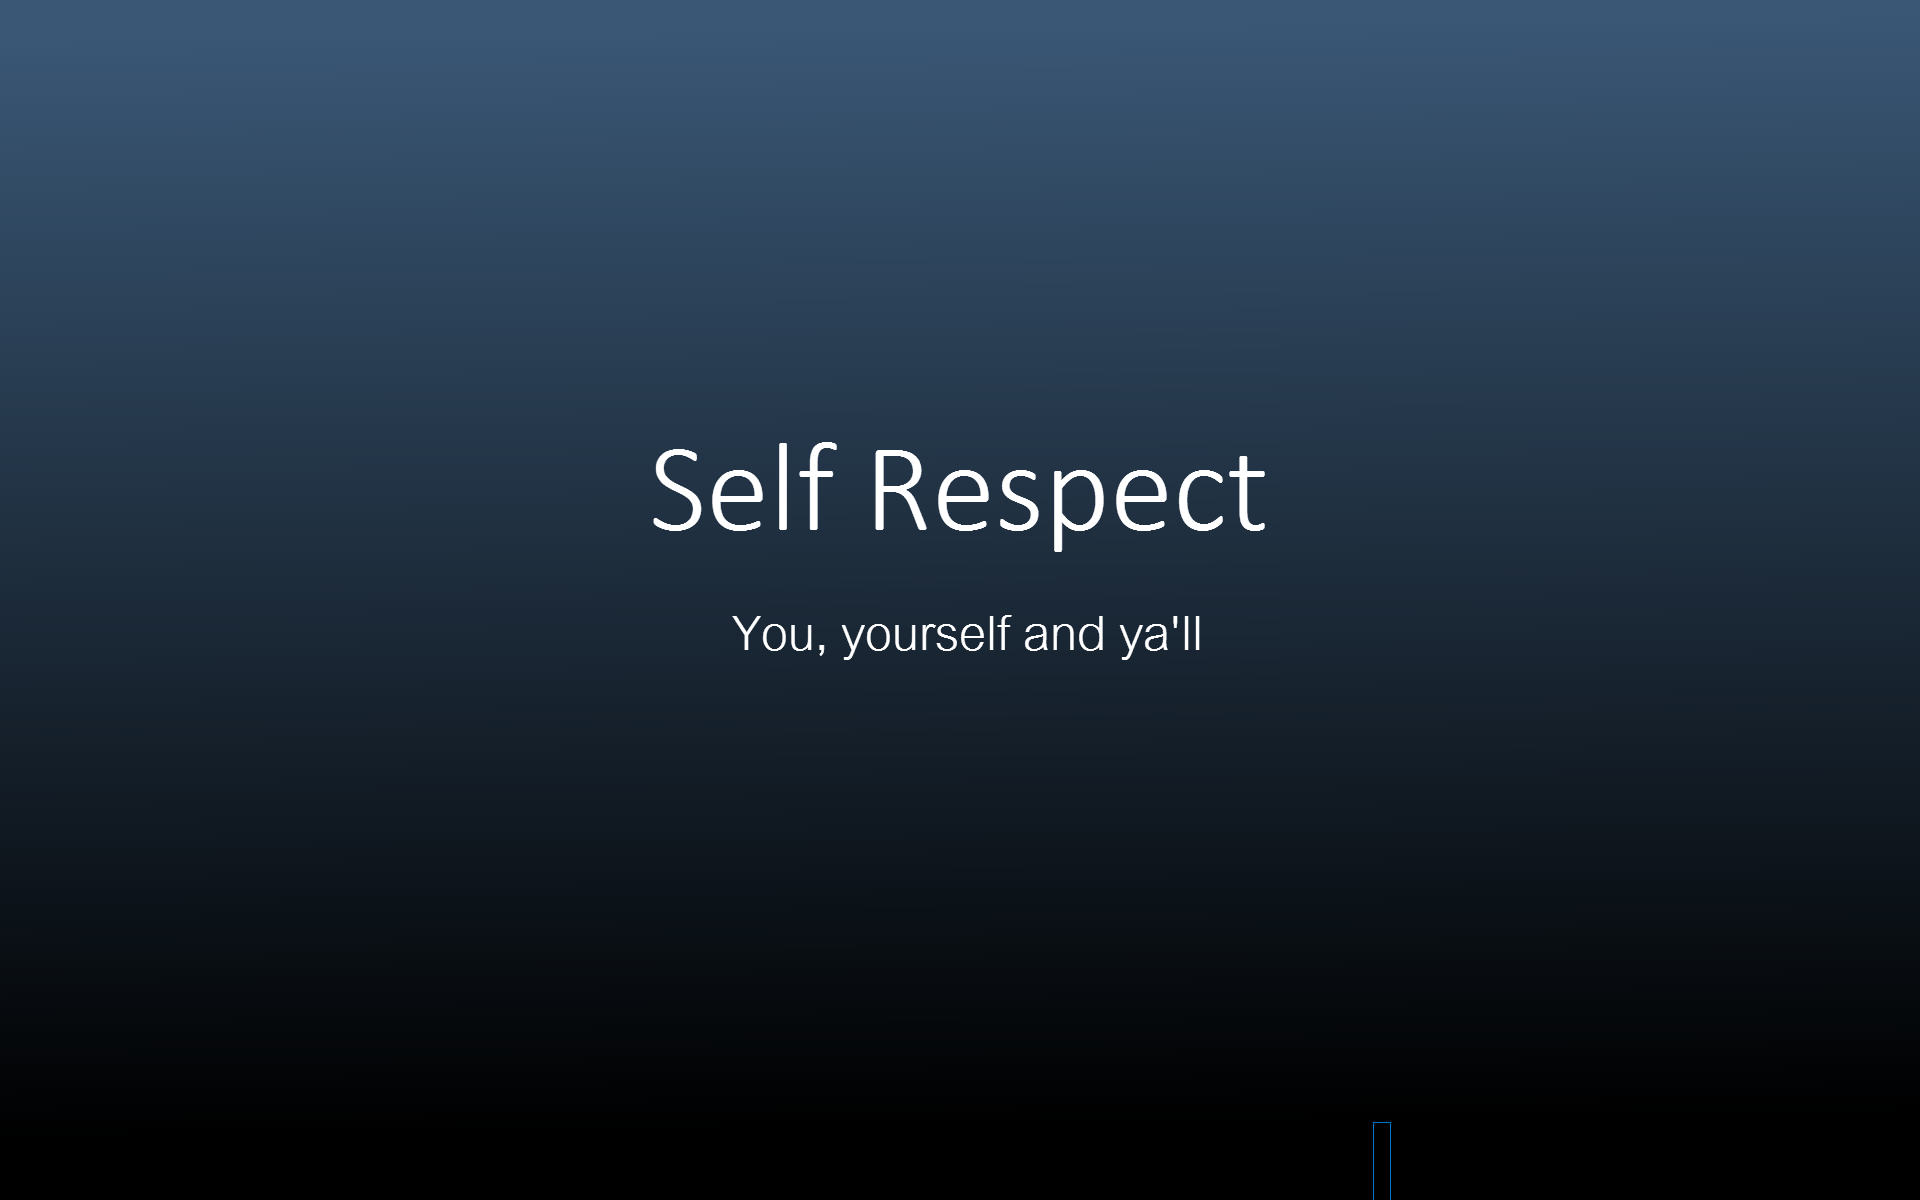 Self Respect is vey important for effective and good parenting